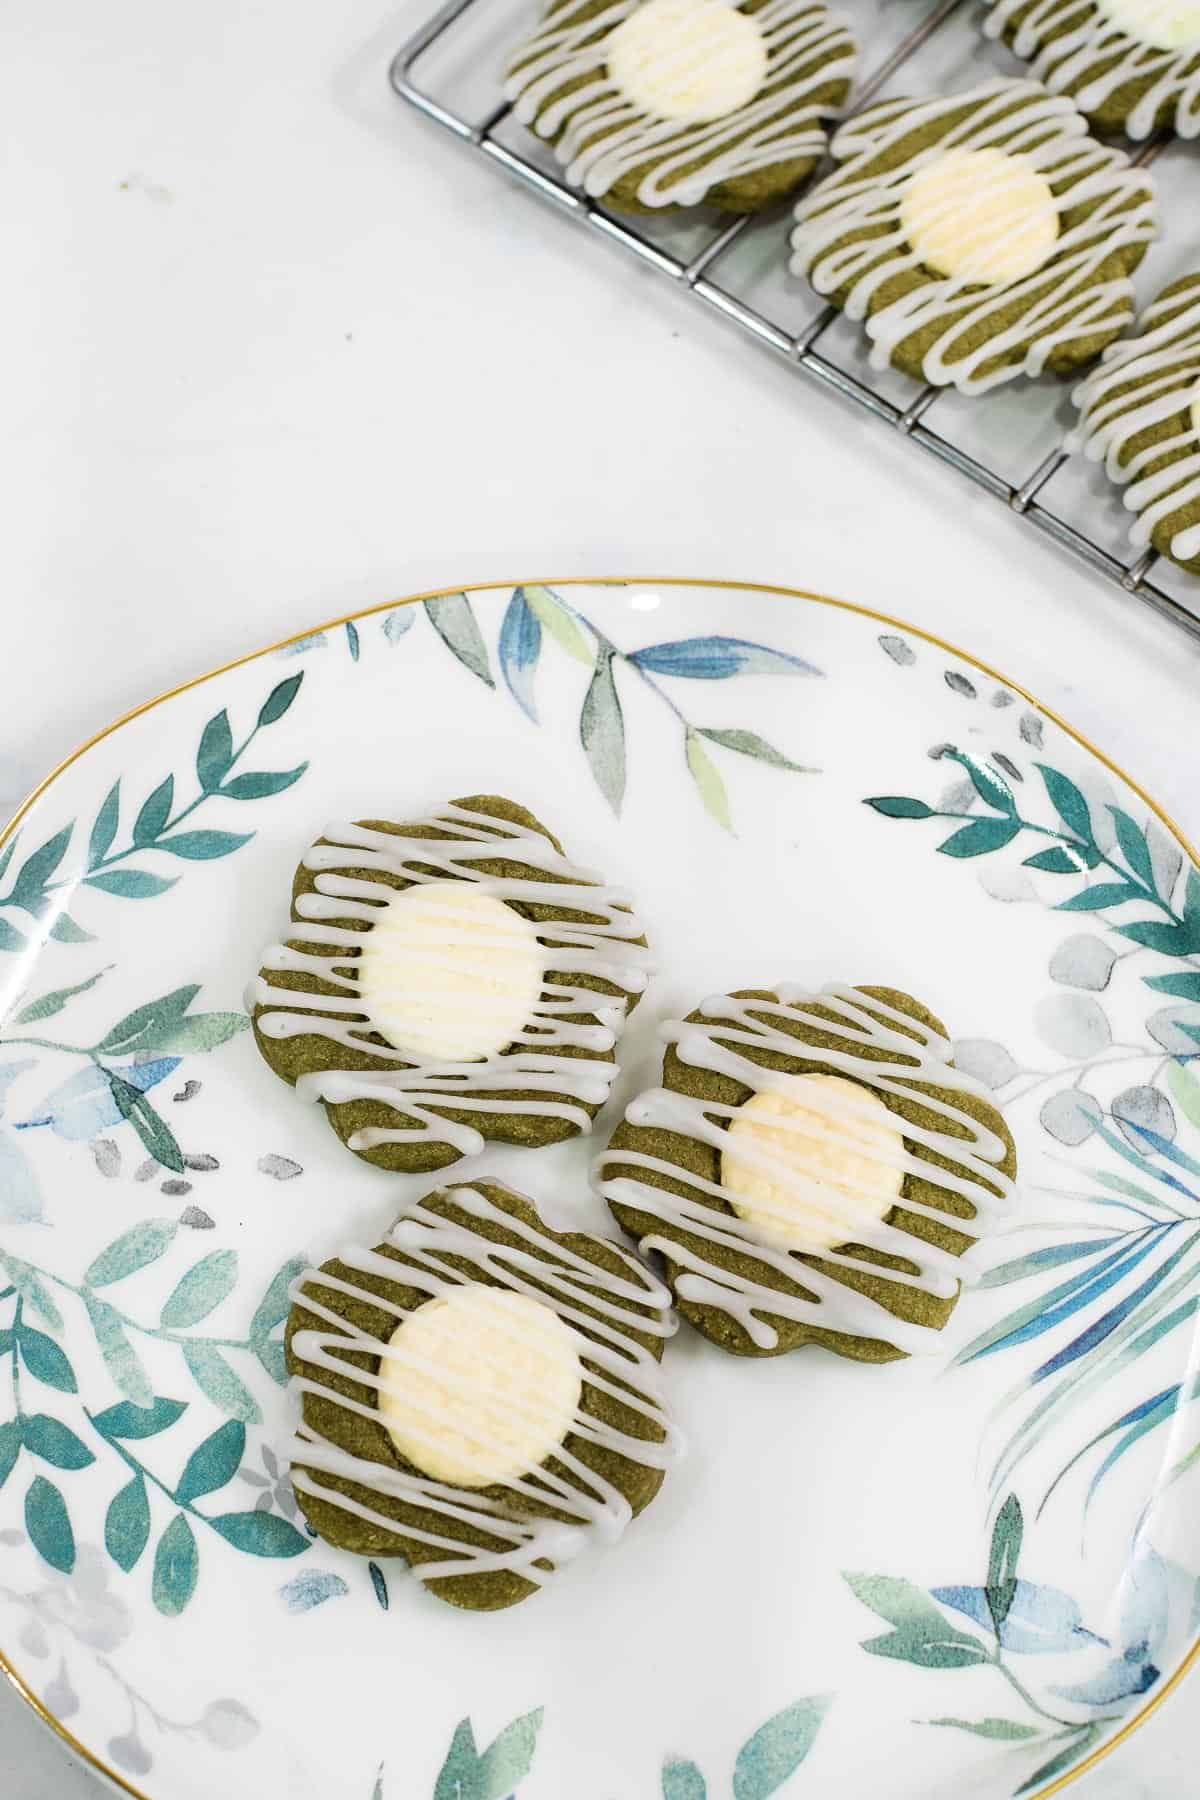 3 flower shaped green cookies with white centers and glaze icing drizzle on a white plate with leaves motif.